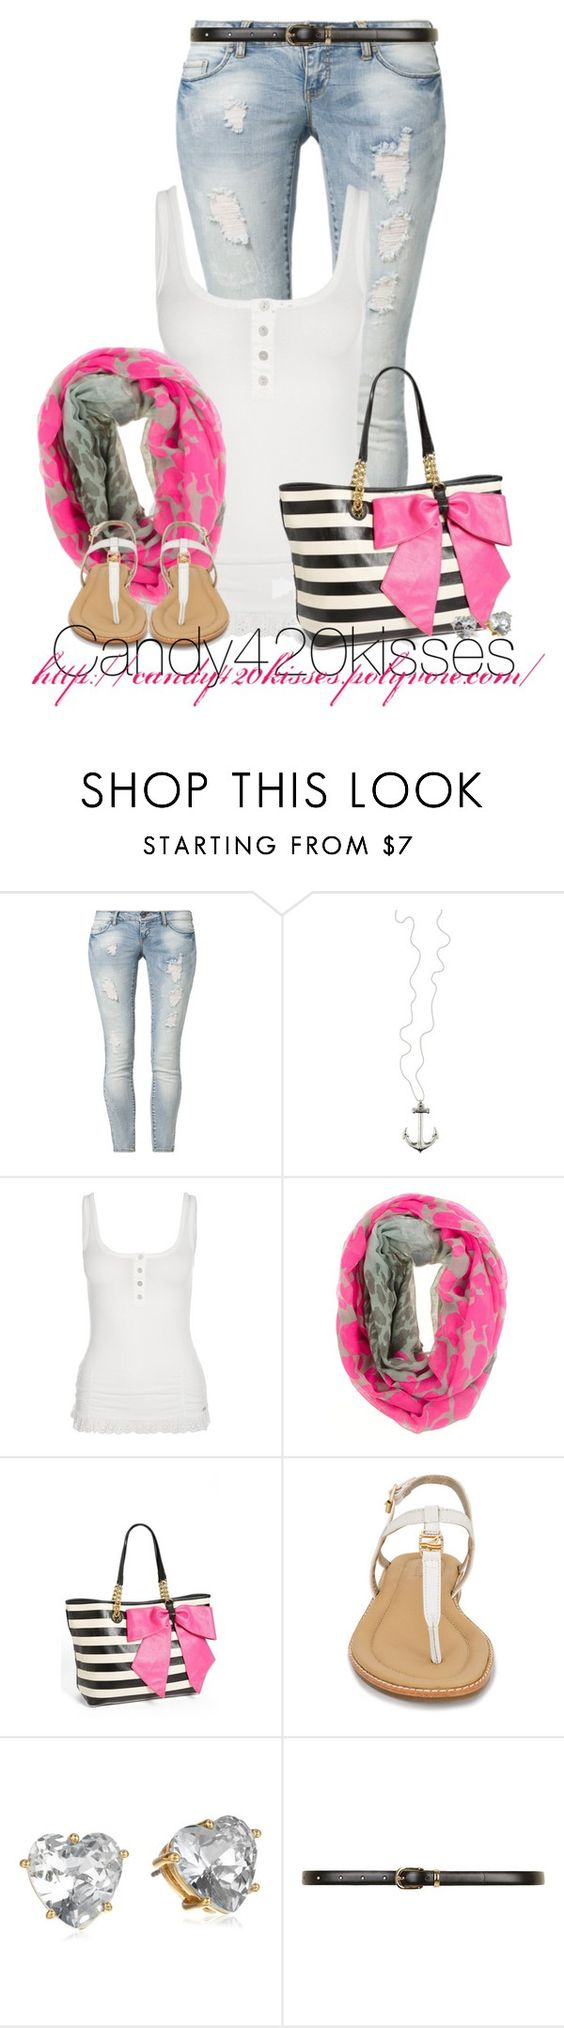 """Untitled #186"" by candy420kisses ❤ liked on Polyvore featuring ONLY, Fornarina, Betsey Johnson, Sperry, Juicy Couture and Dorothy Perkins"